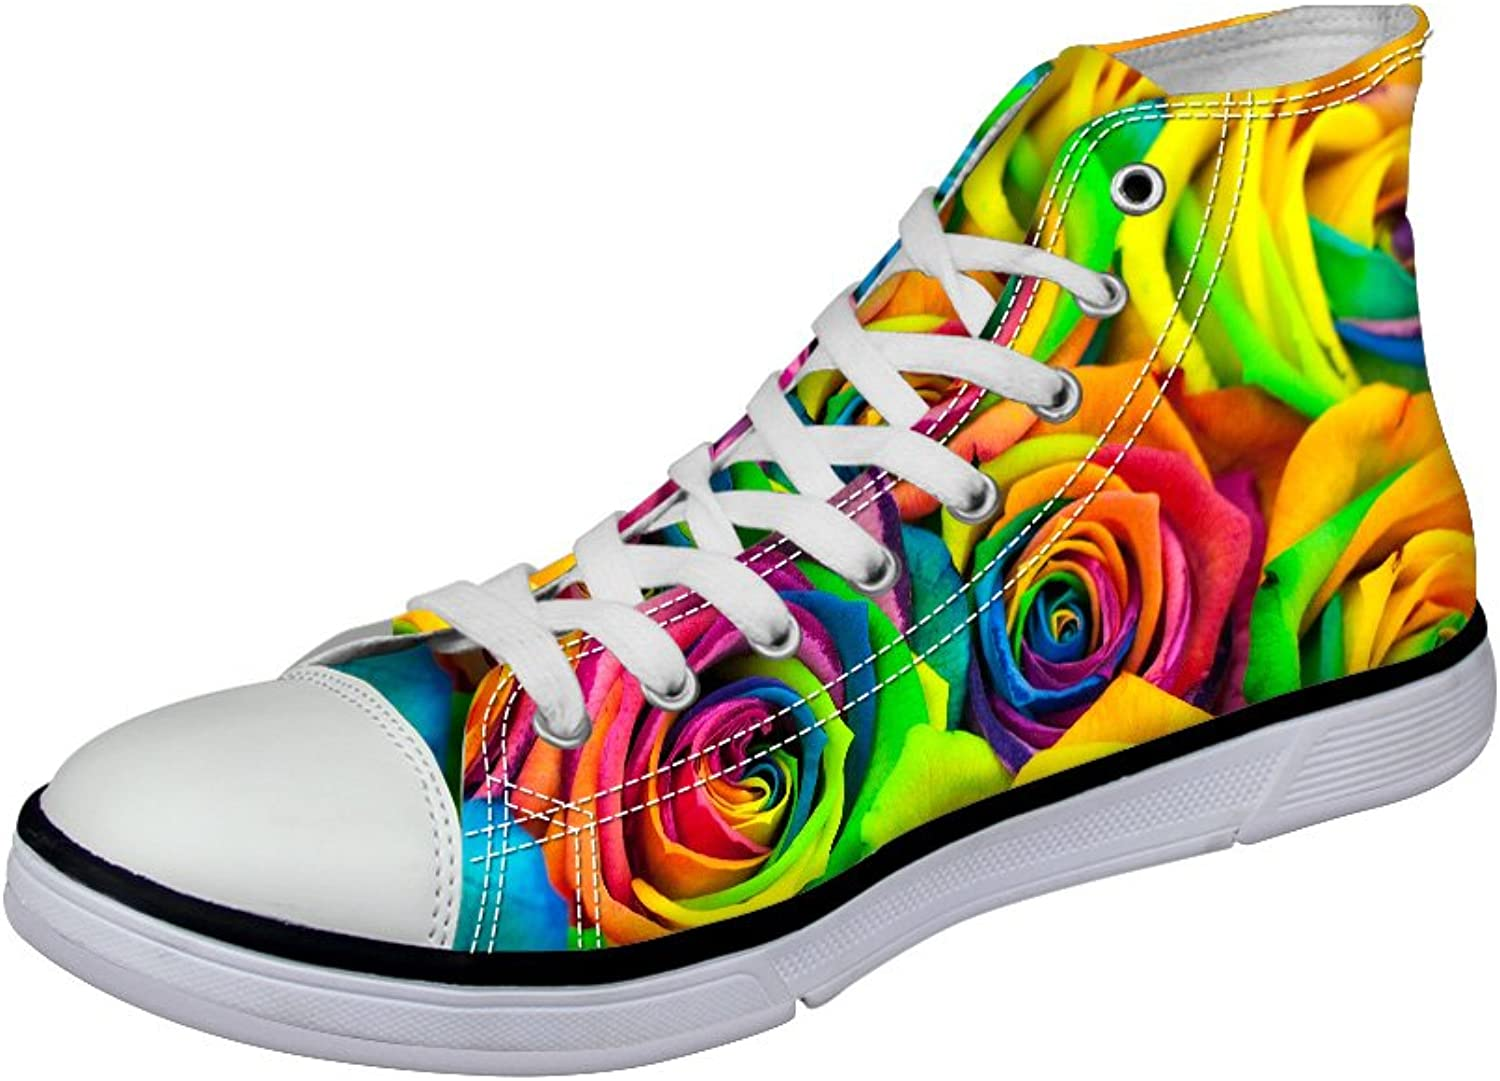 Frestree Stylish Sneakers for Women Basketball shoes